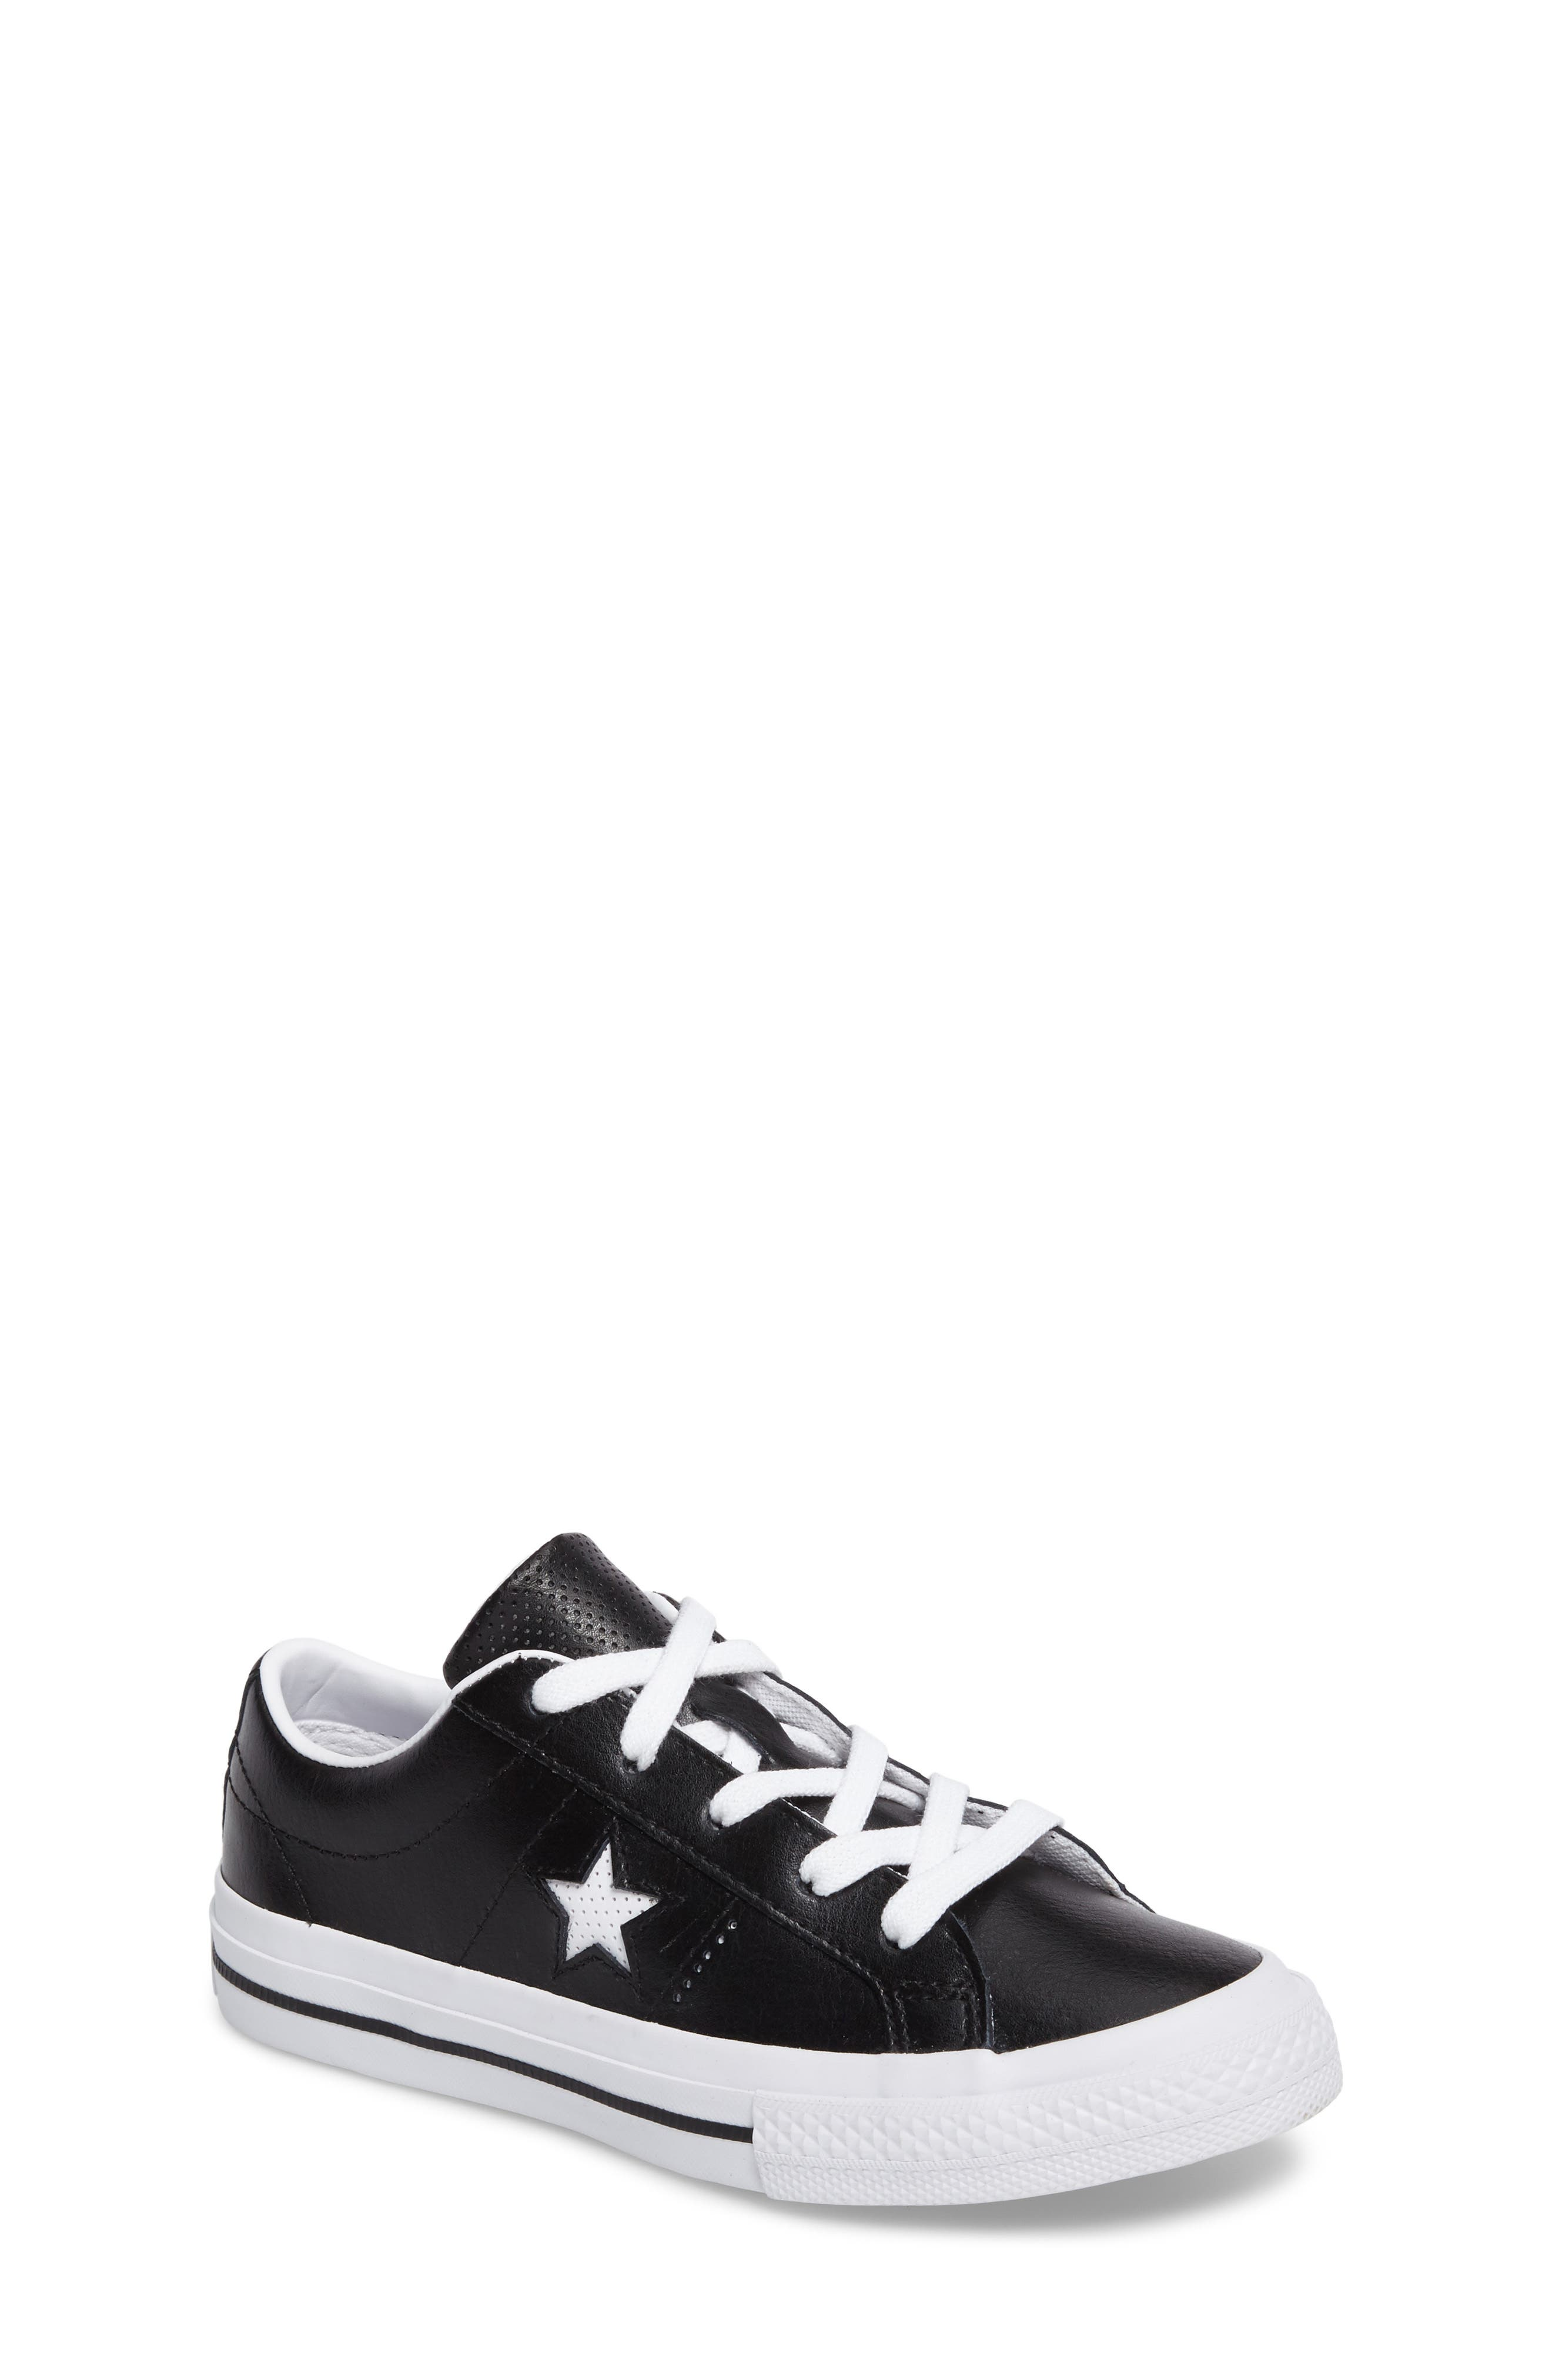 Chuck Taylor<sup>®</sup> All Star<sup>®</sup> One Star Sneaker,                             Main thumbnail 1, color,                             Black Leather